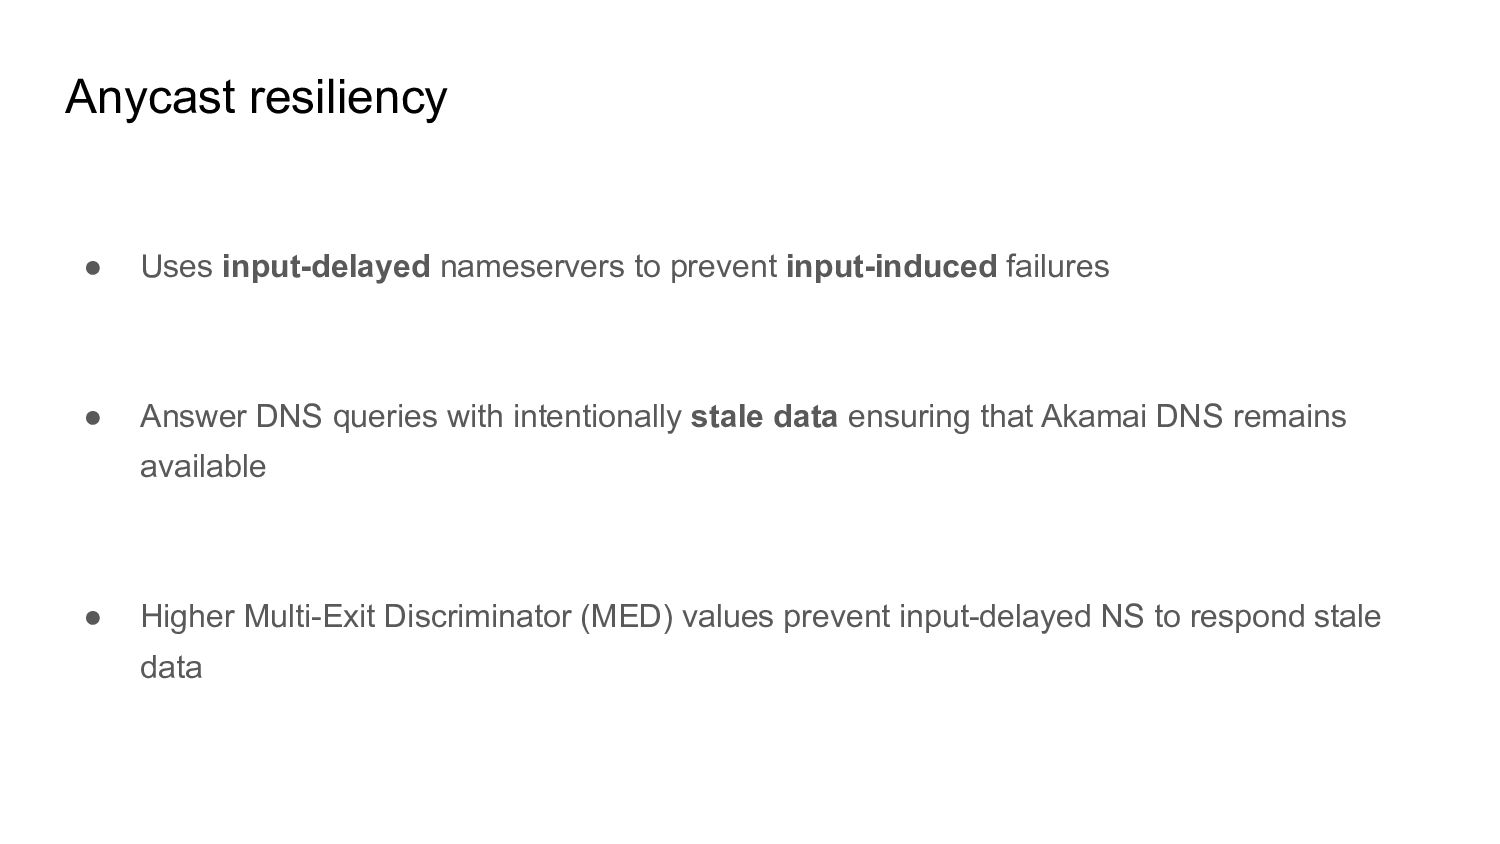 ● Uses input-delayed nameservers to prevent inp...